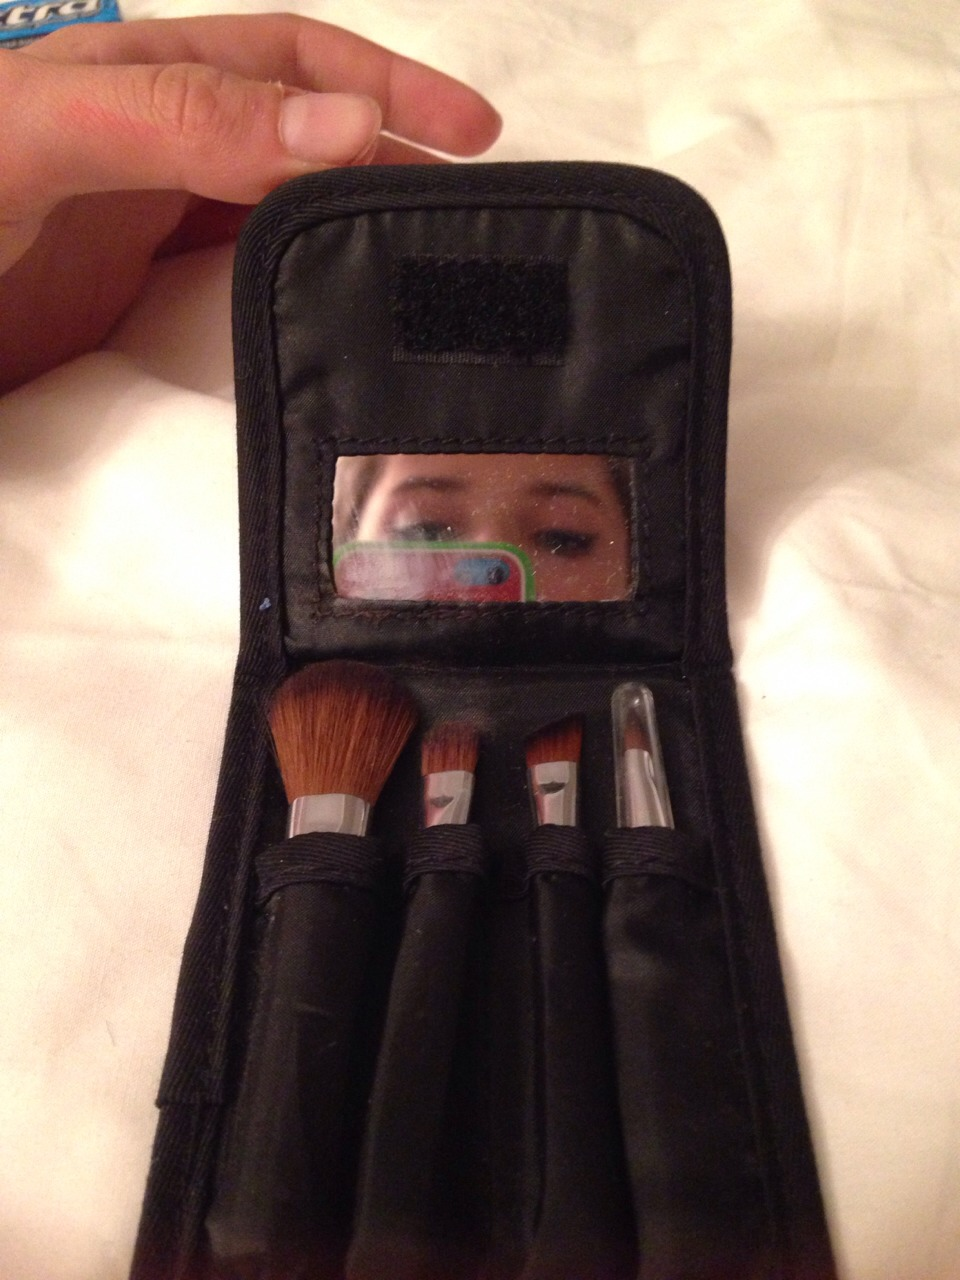 8⃣ - BRUSH KIT (Excuse the face and the phone case and the finger) Brushes are essential to applying makeup in the perf way - it might seem like a faff but it really does make a difference. (Mine is from the body shop)